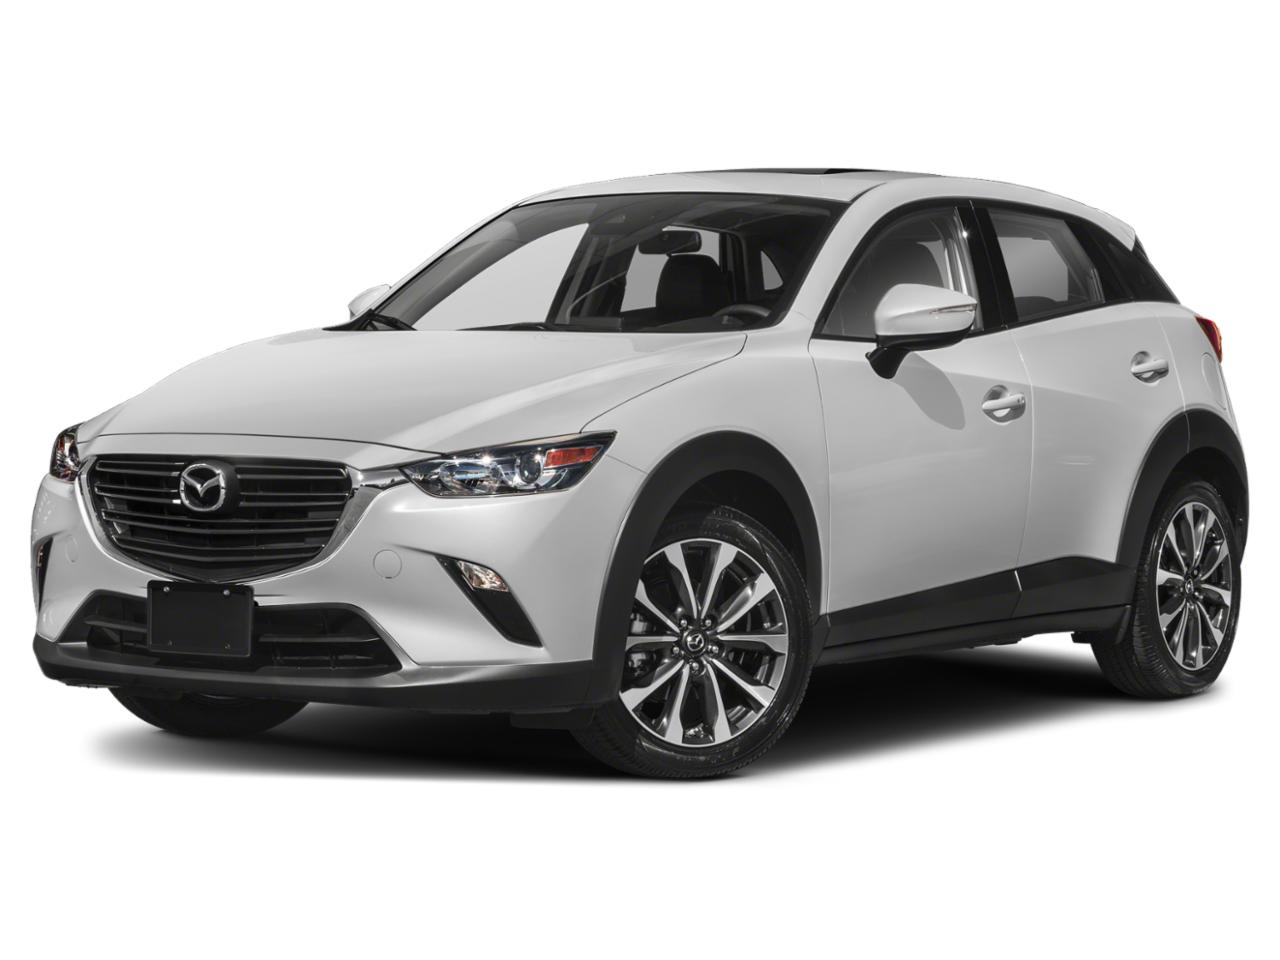 2019 Mazda CX-3 Vehicle Photo in Hamden, CT 06517